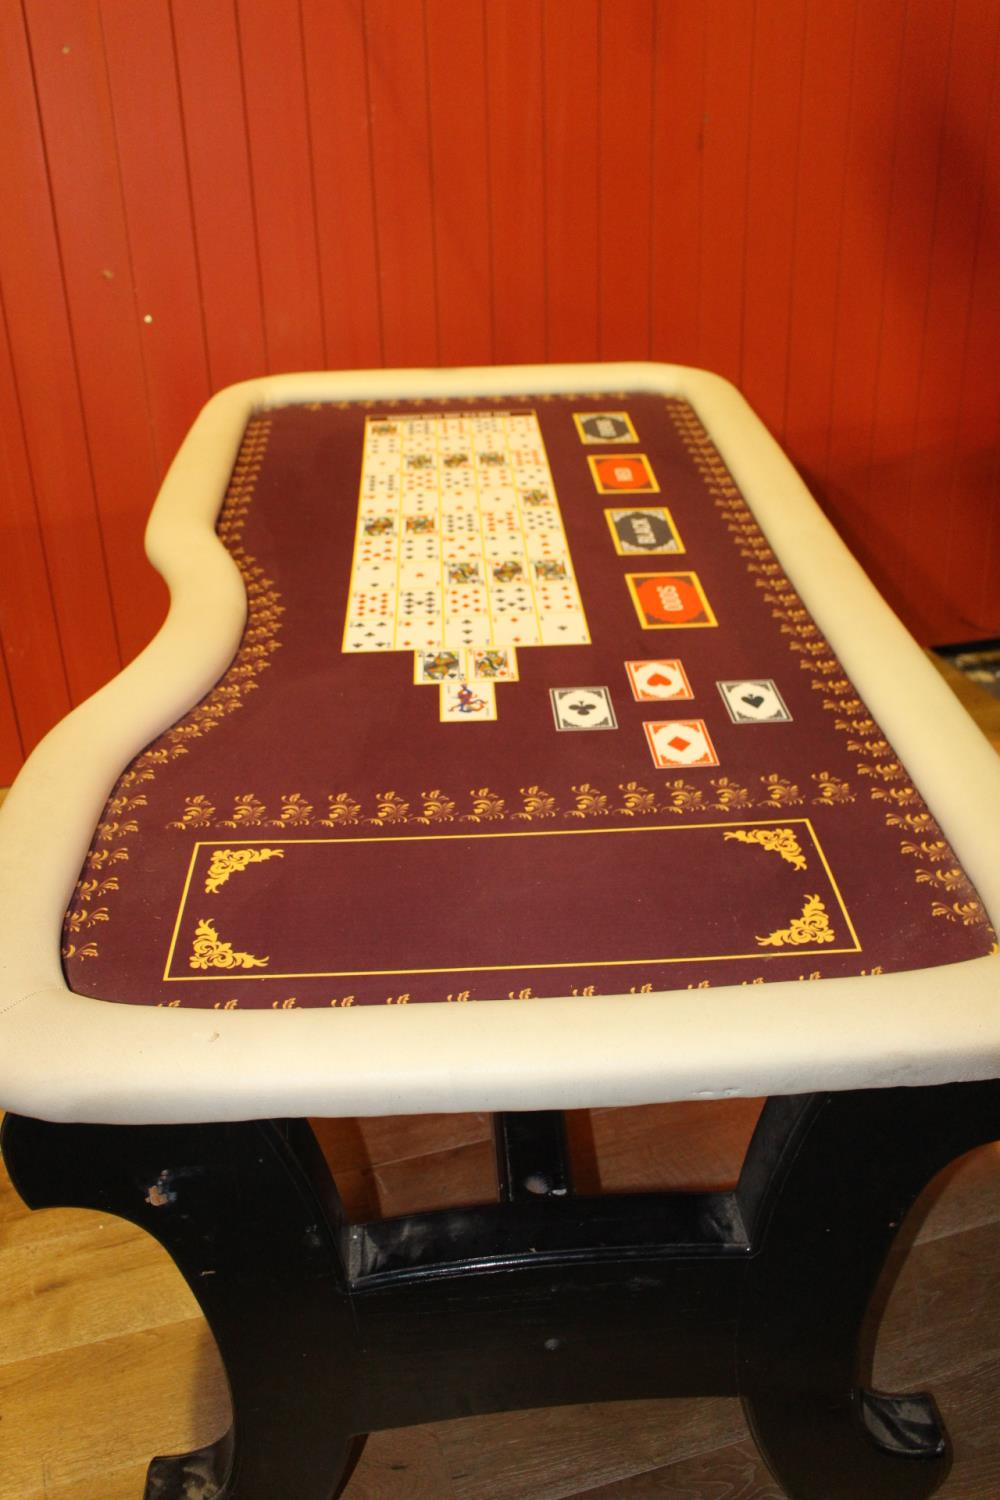 Card games table